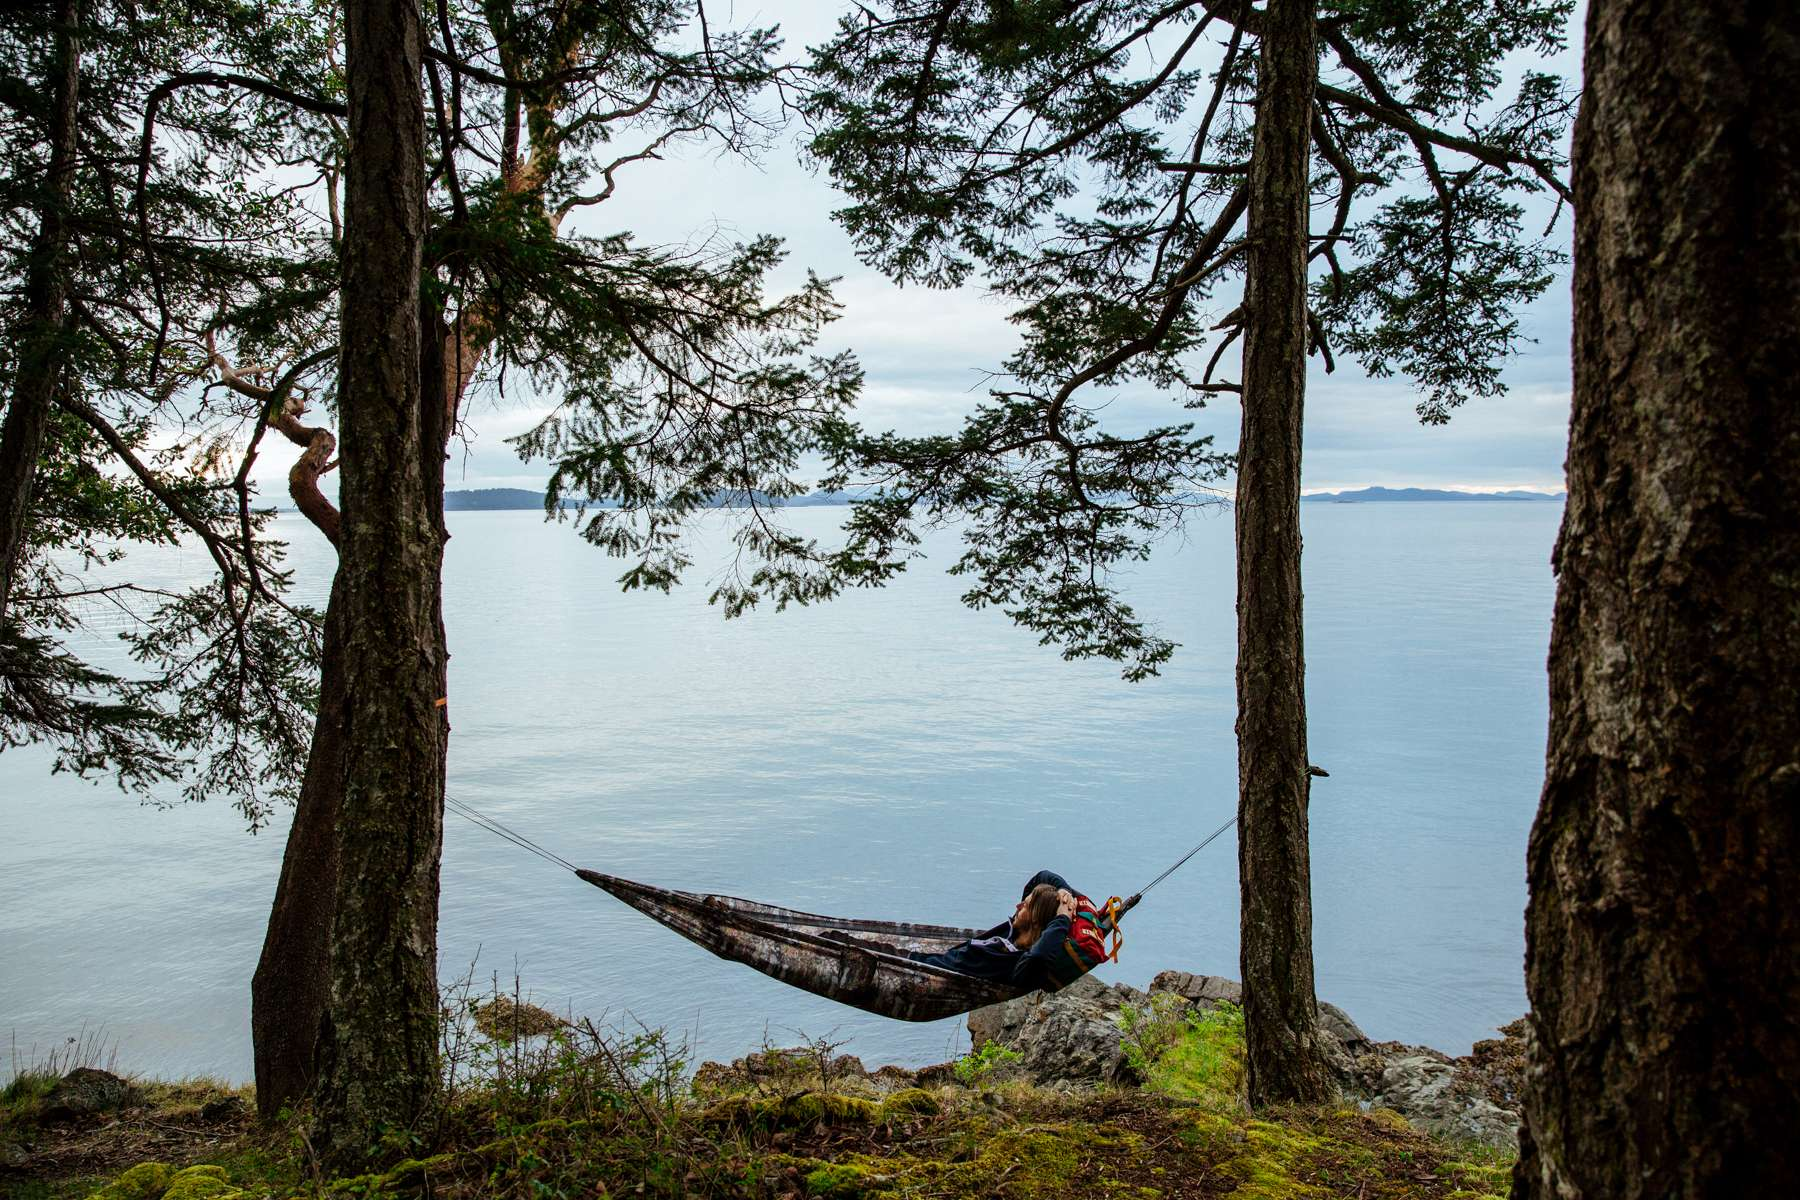 Mark Sollors, Hammock in front of calm ocean